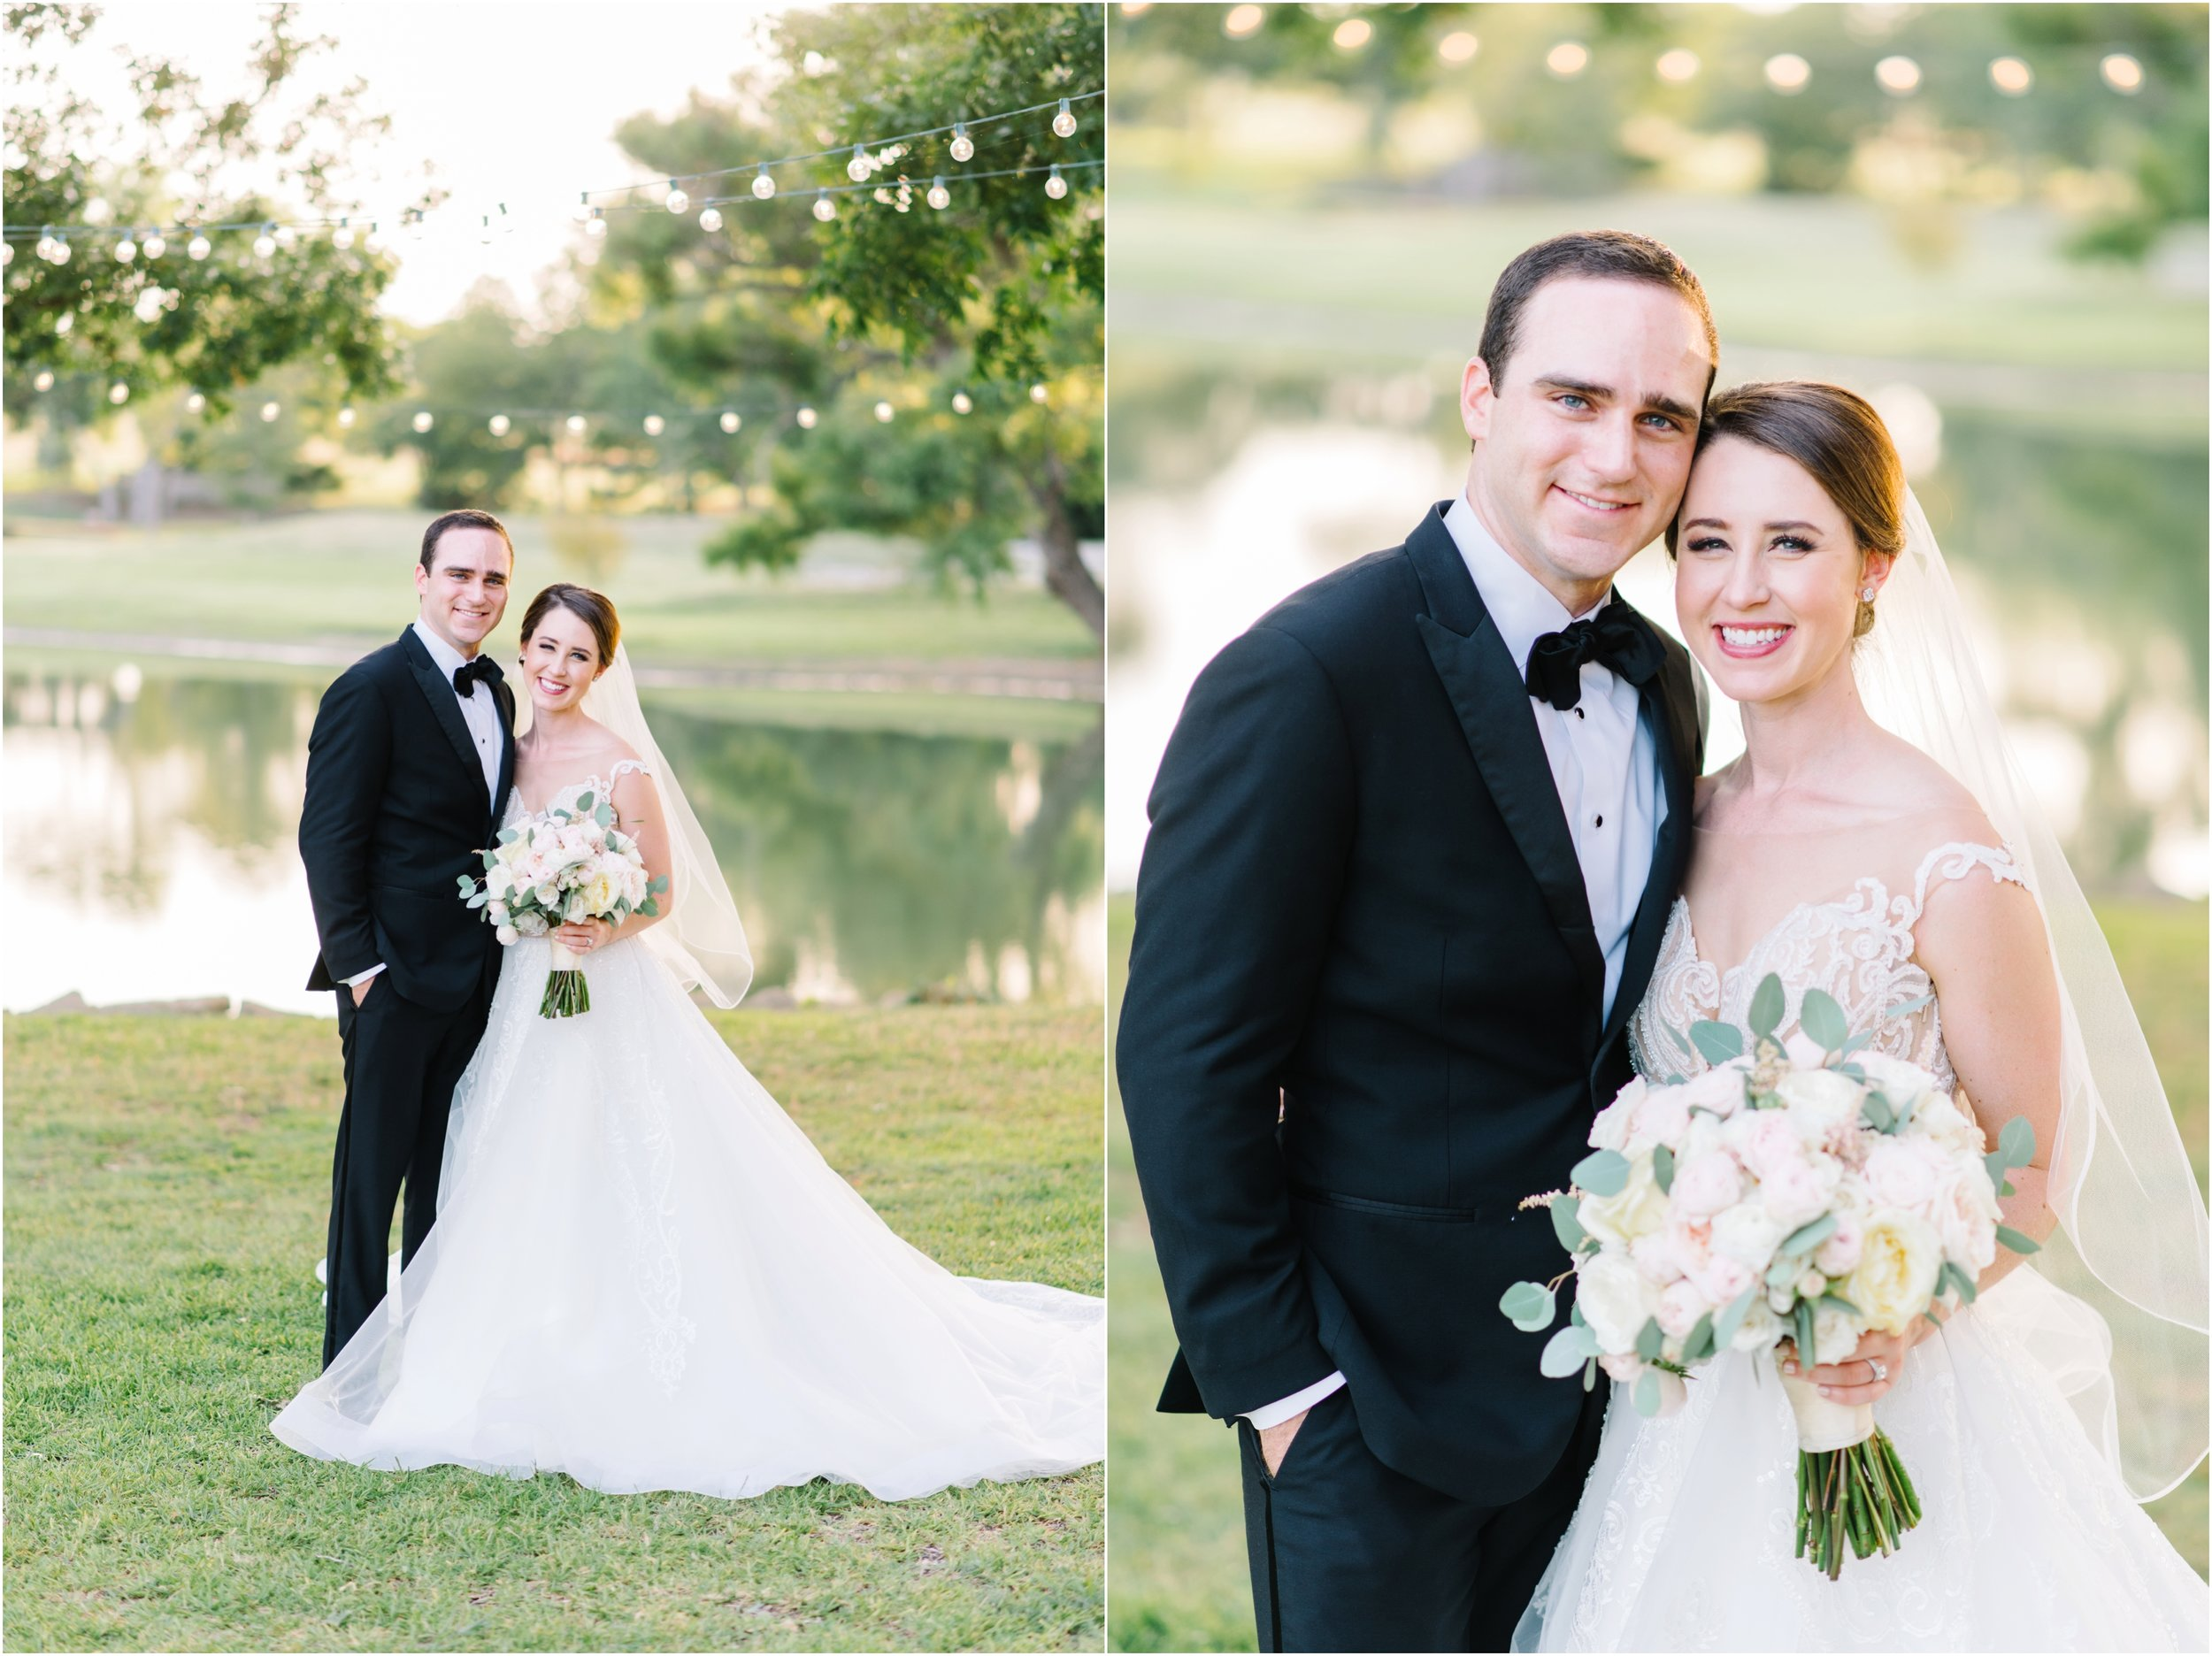 dallasweddingphotographer_fortworthweddingphotographer_texasweddingphotographer_mattandjulieweddings_whiterocklakewedding_KayleighClay_0036.jpg